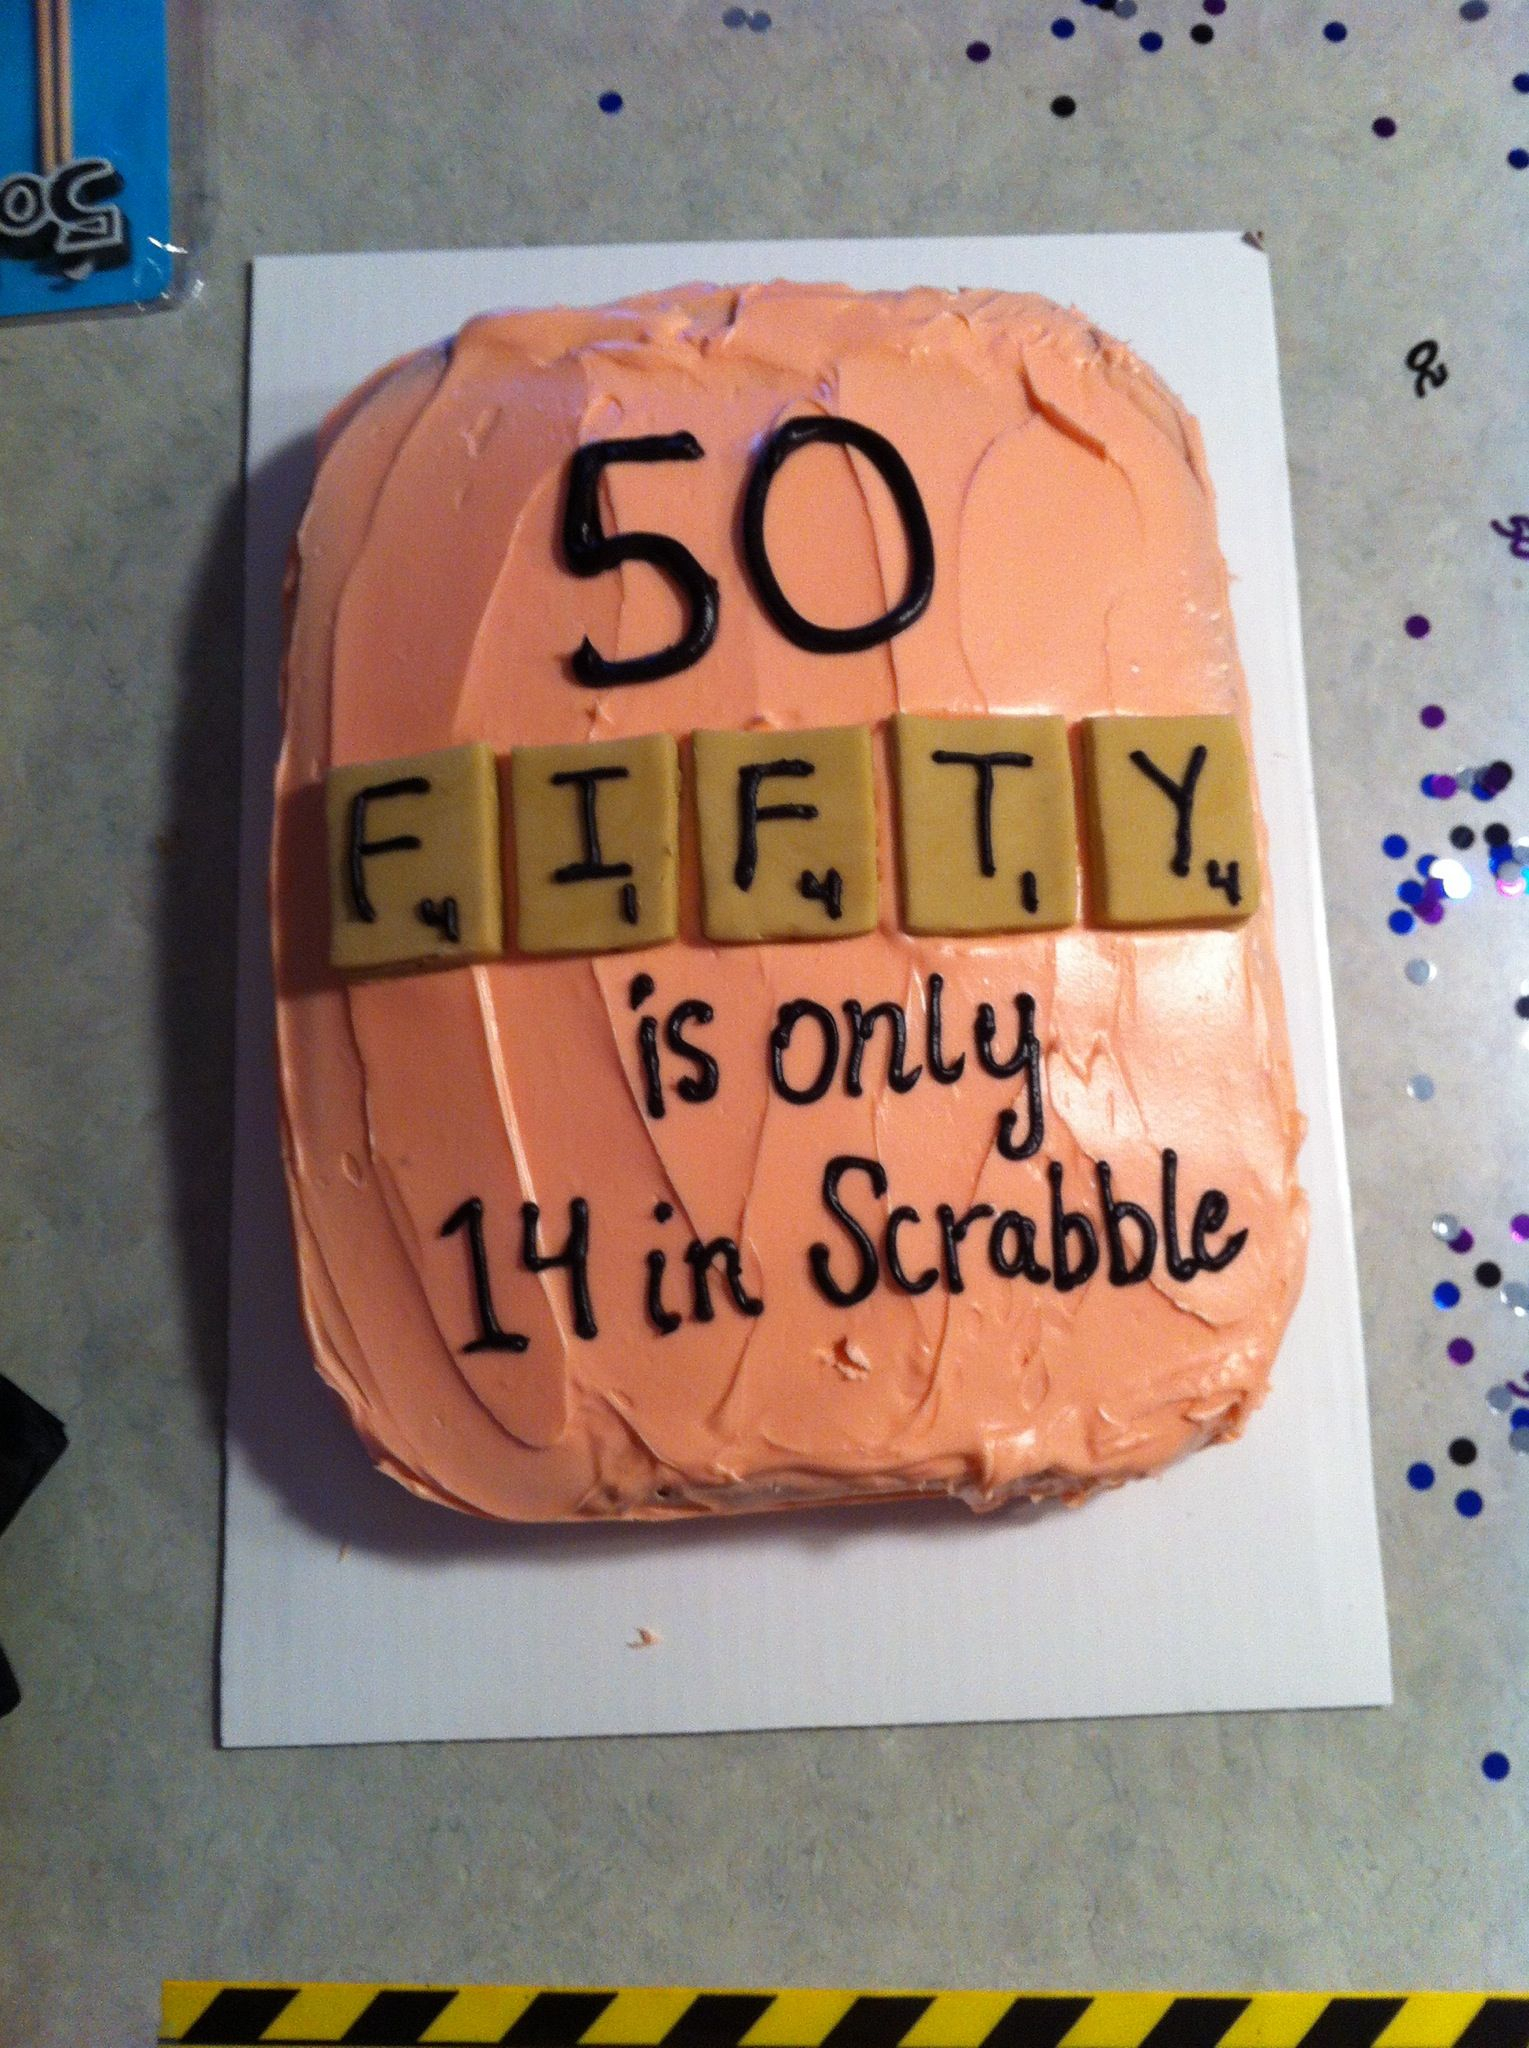 Birthday Cake Funny Scrabble Cake Great Funny 50th Birthday Cake50 Its Only A Number